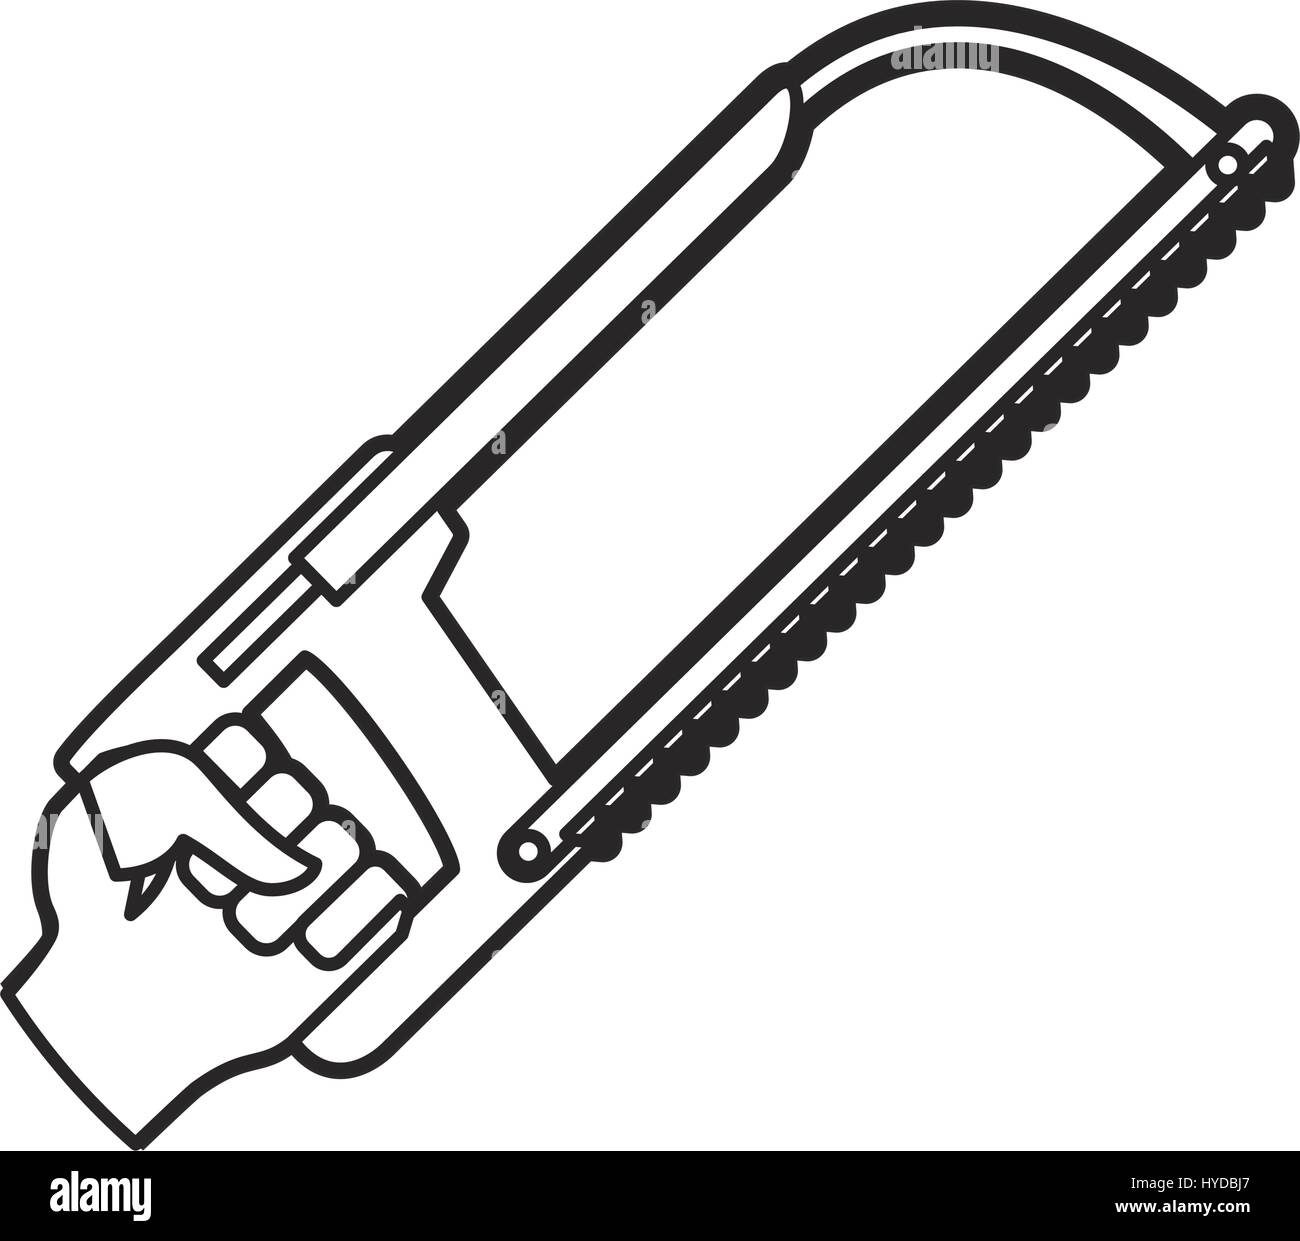 coping saw carpentry tool vector icon illustration graphic design - Stock Image